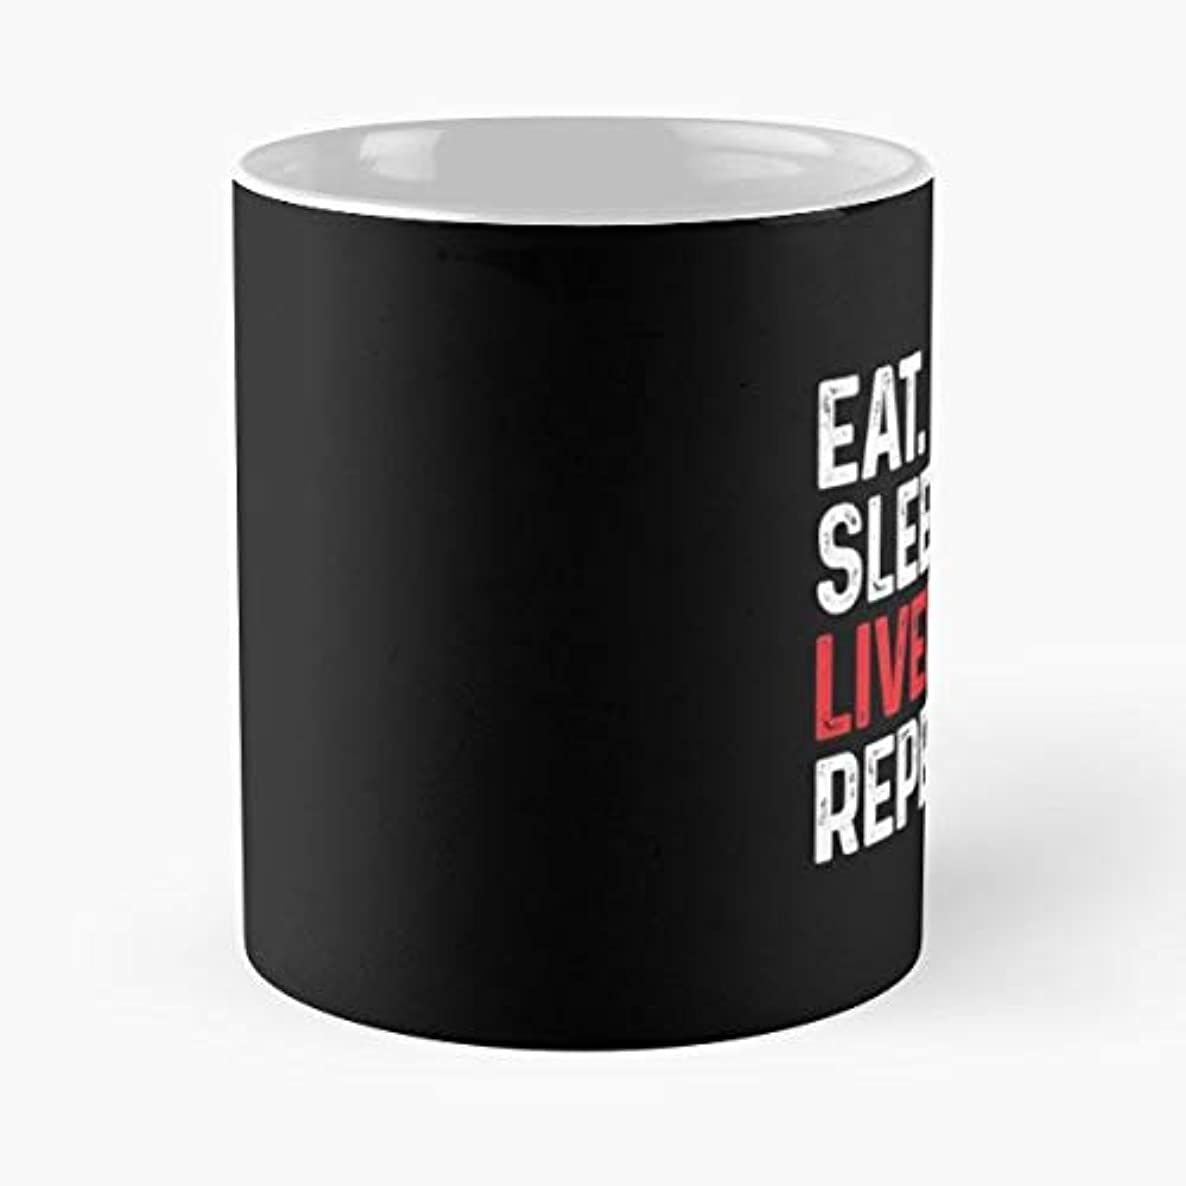 Undefined Mug Coffee Mugs For Gifts Cup Women Tumbler Cups 11 Gift Best Gifts